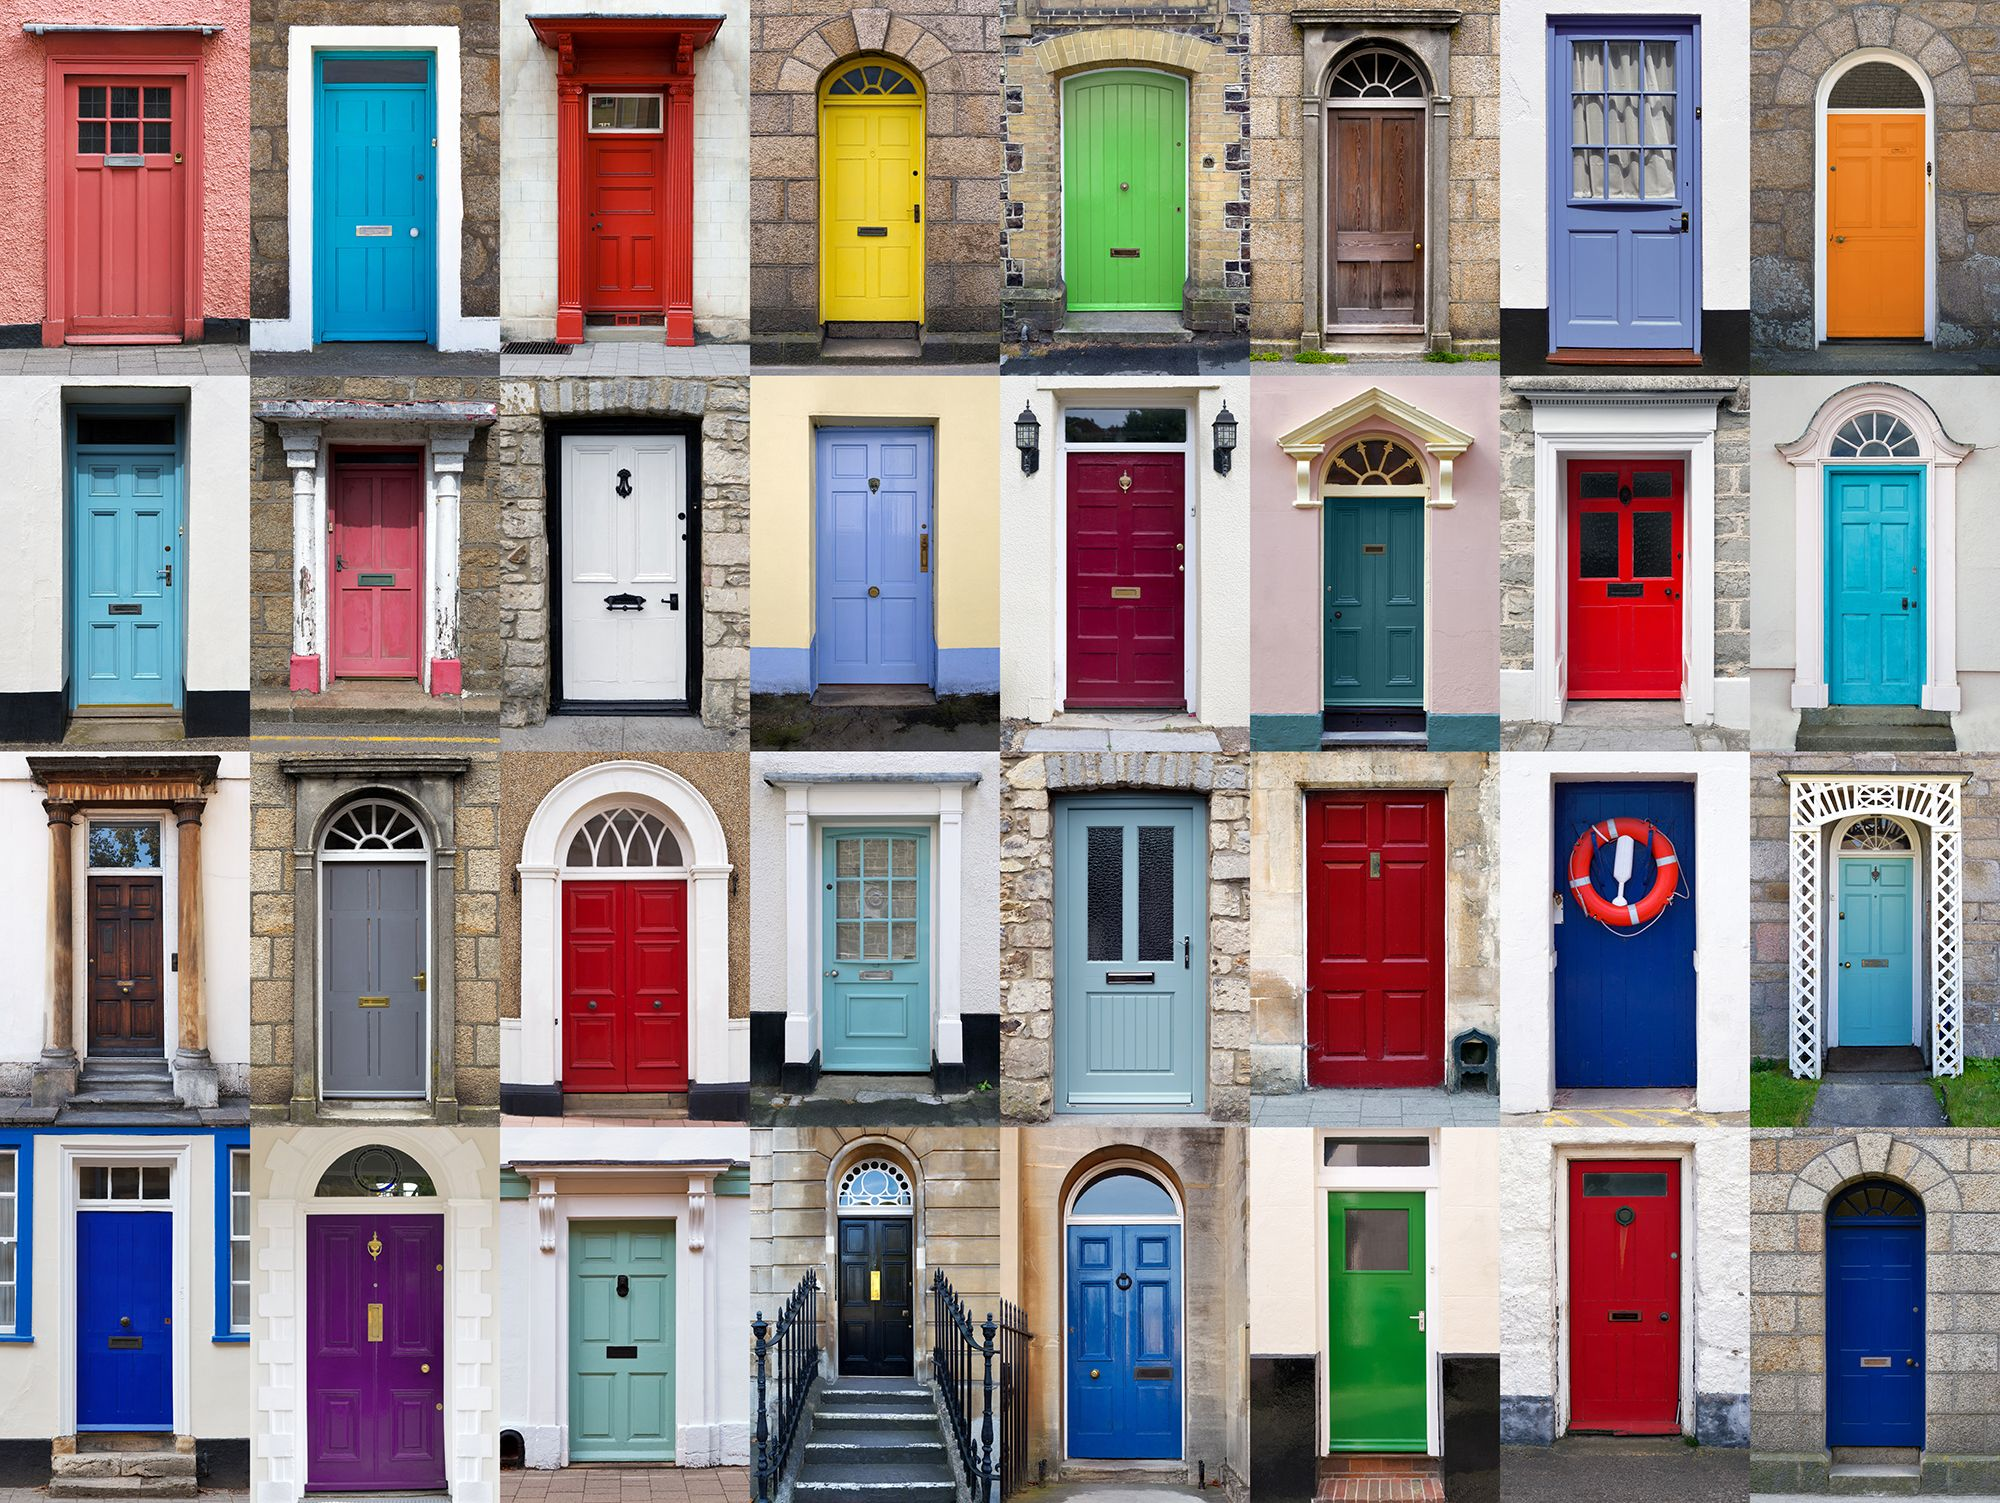 Painted Front Door Ideas 16 diy projects and ideas to improve your home's curb appeal